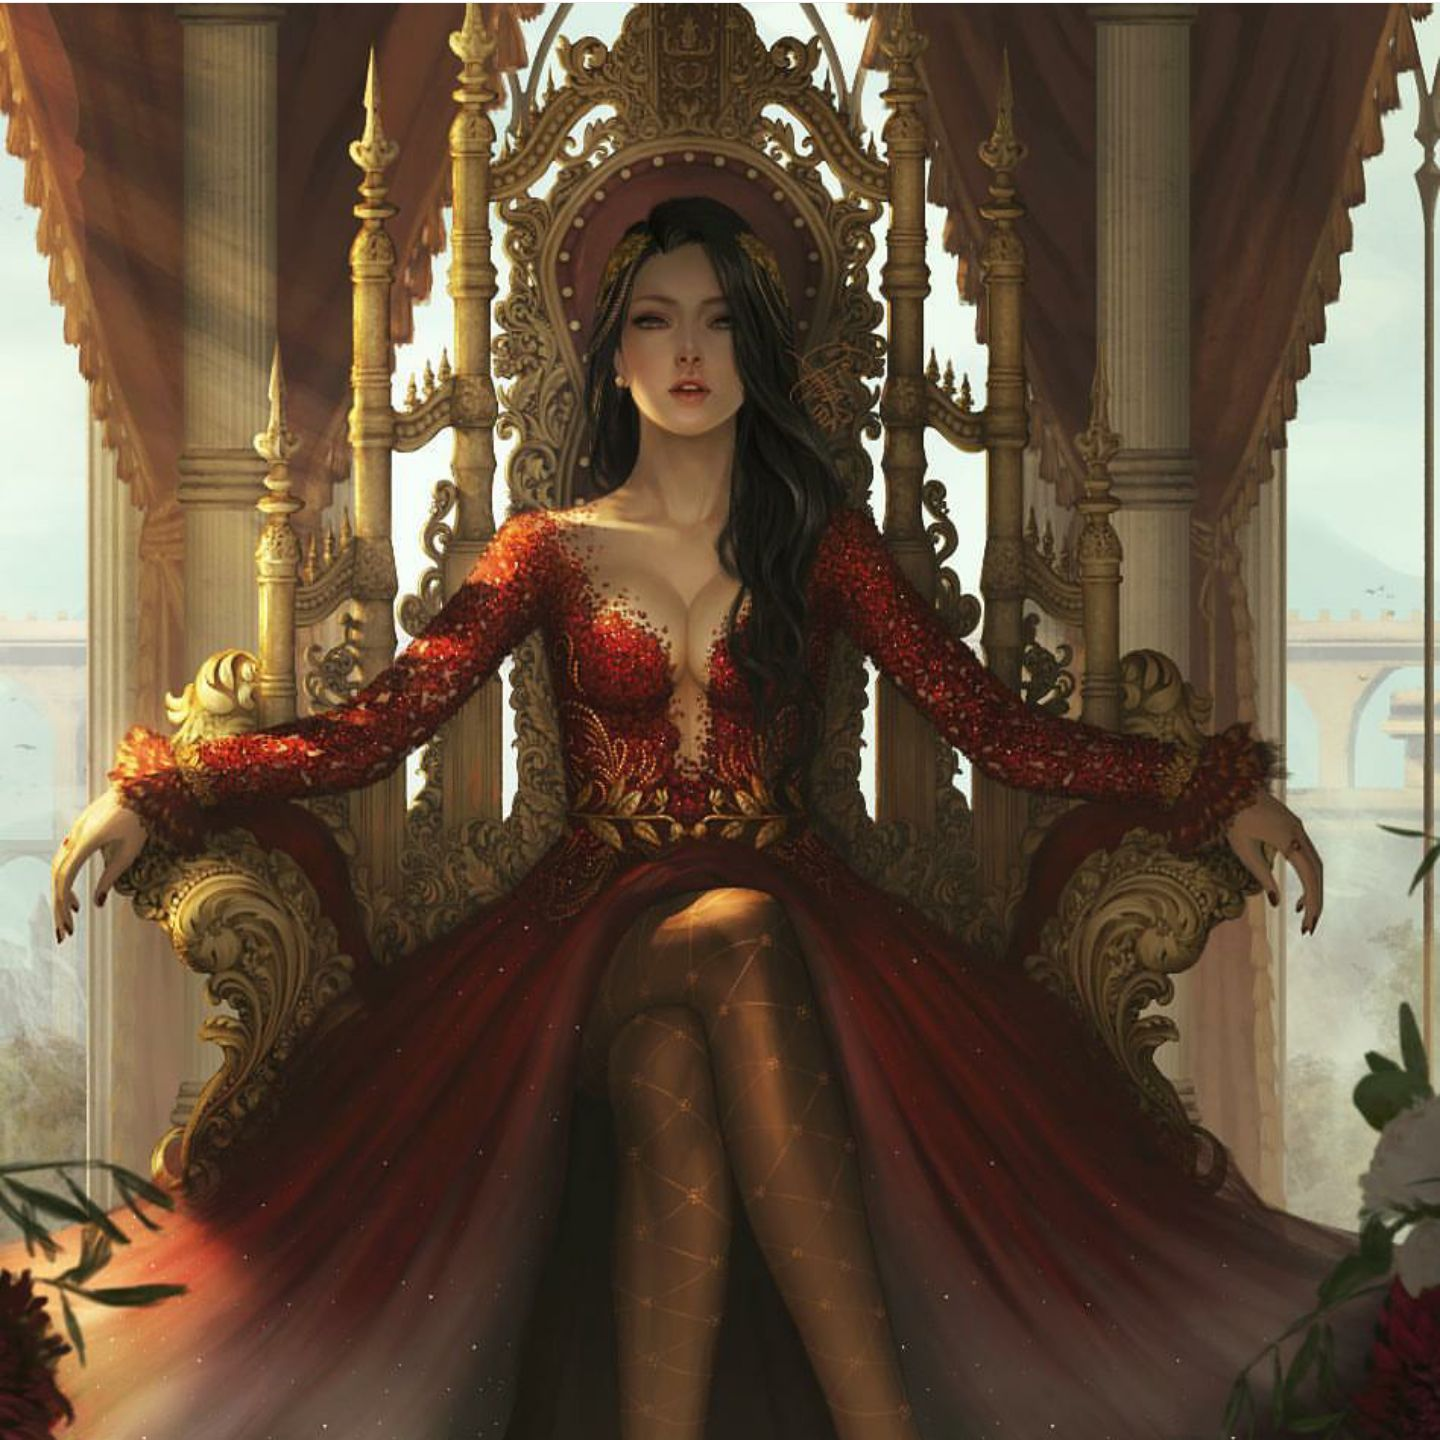 Arte Manga Here Onyx On Her Throne Zeichnungen Pinterest Dessin